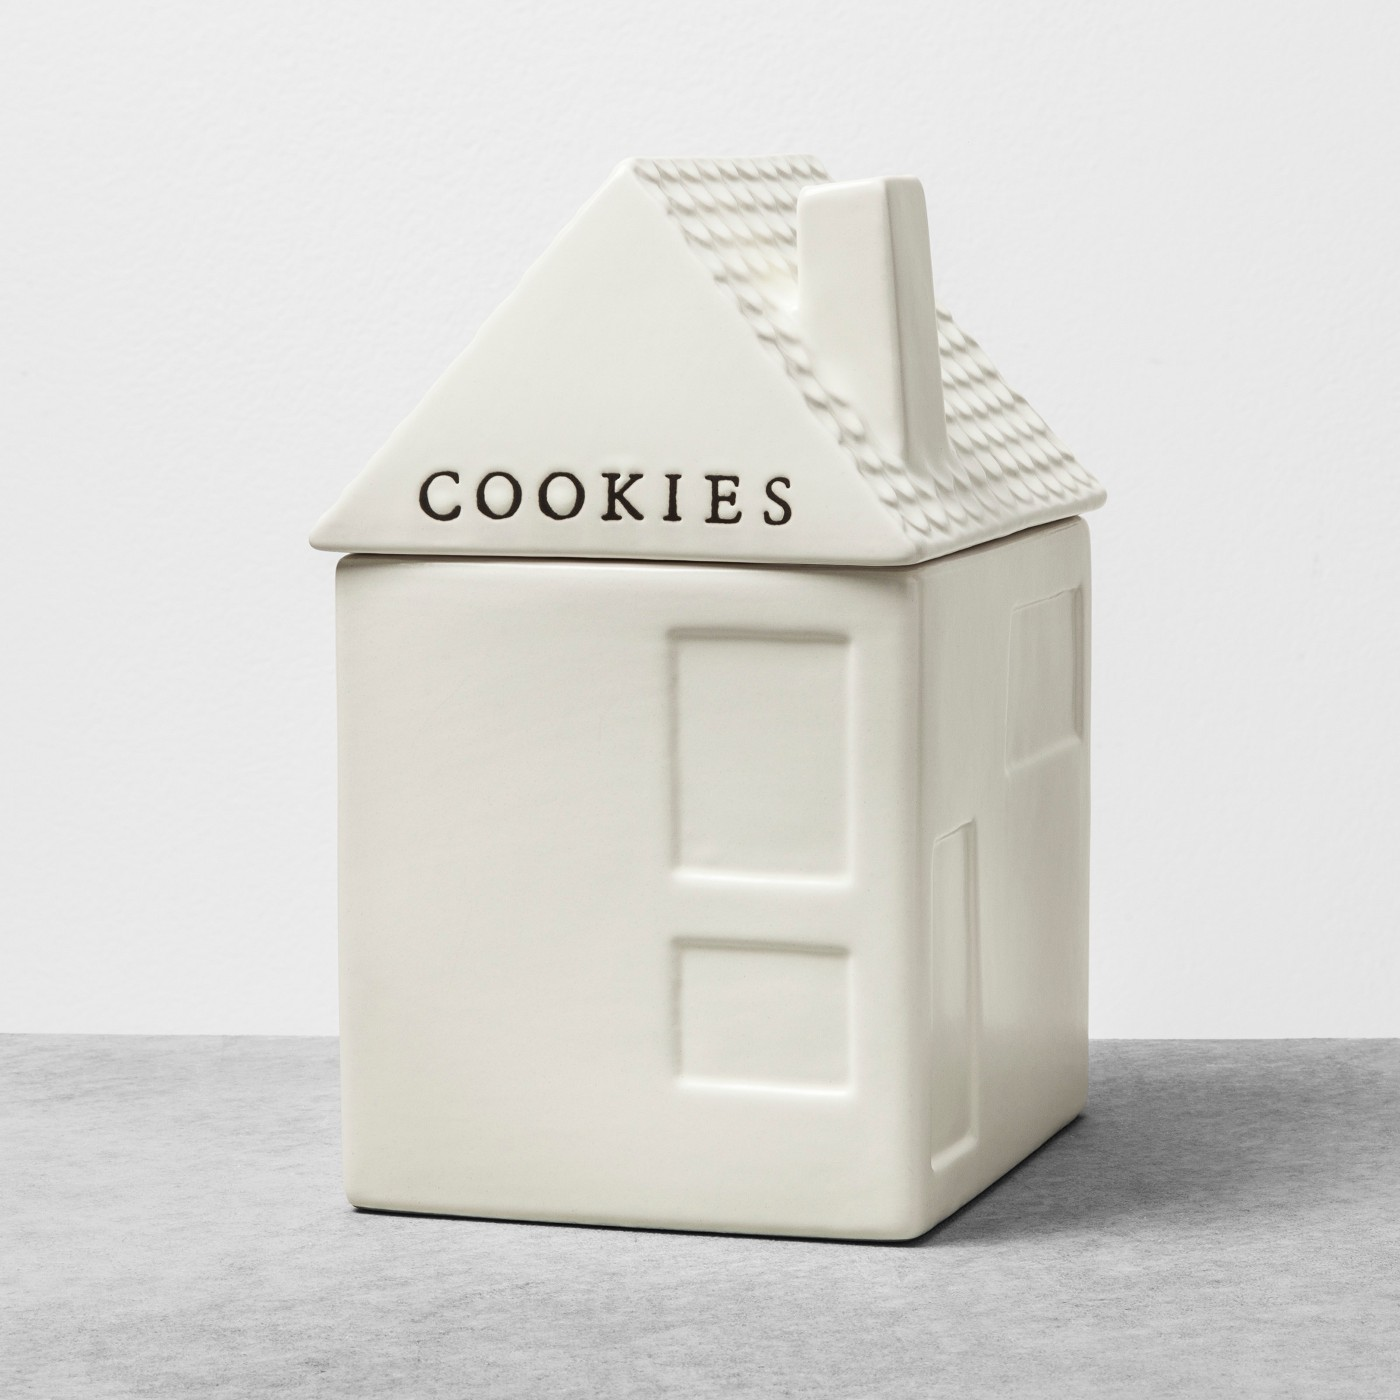 Cookie Jar White Hearth & Hand with Magnolia